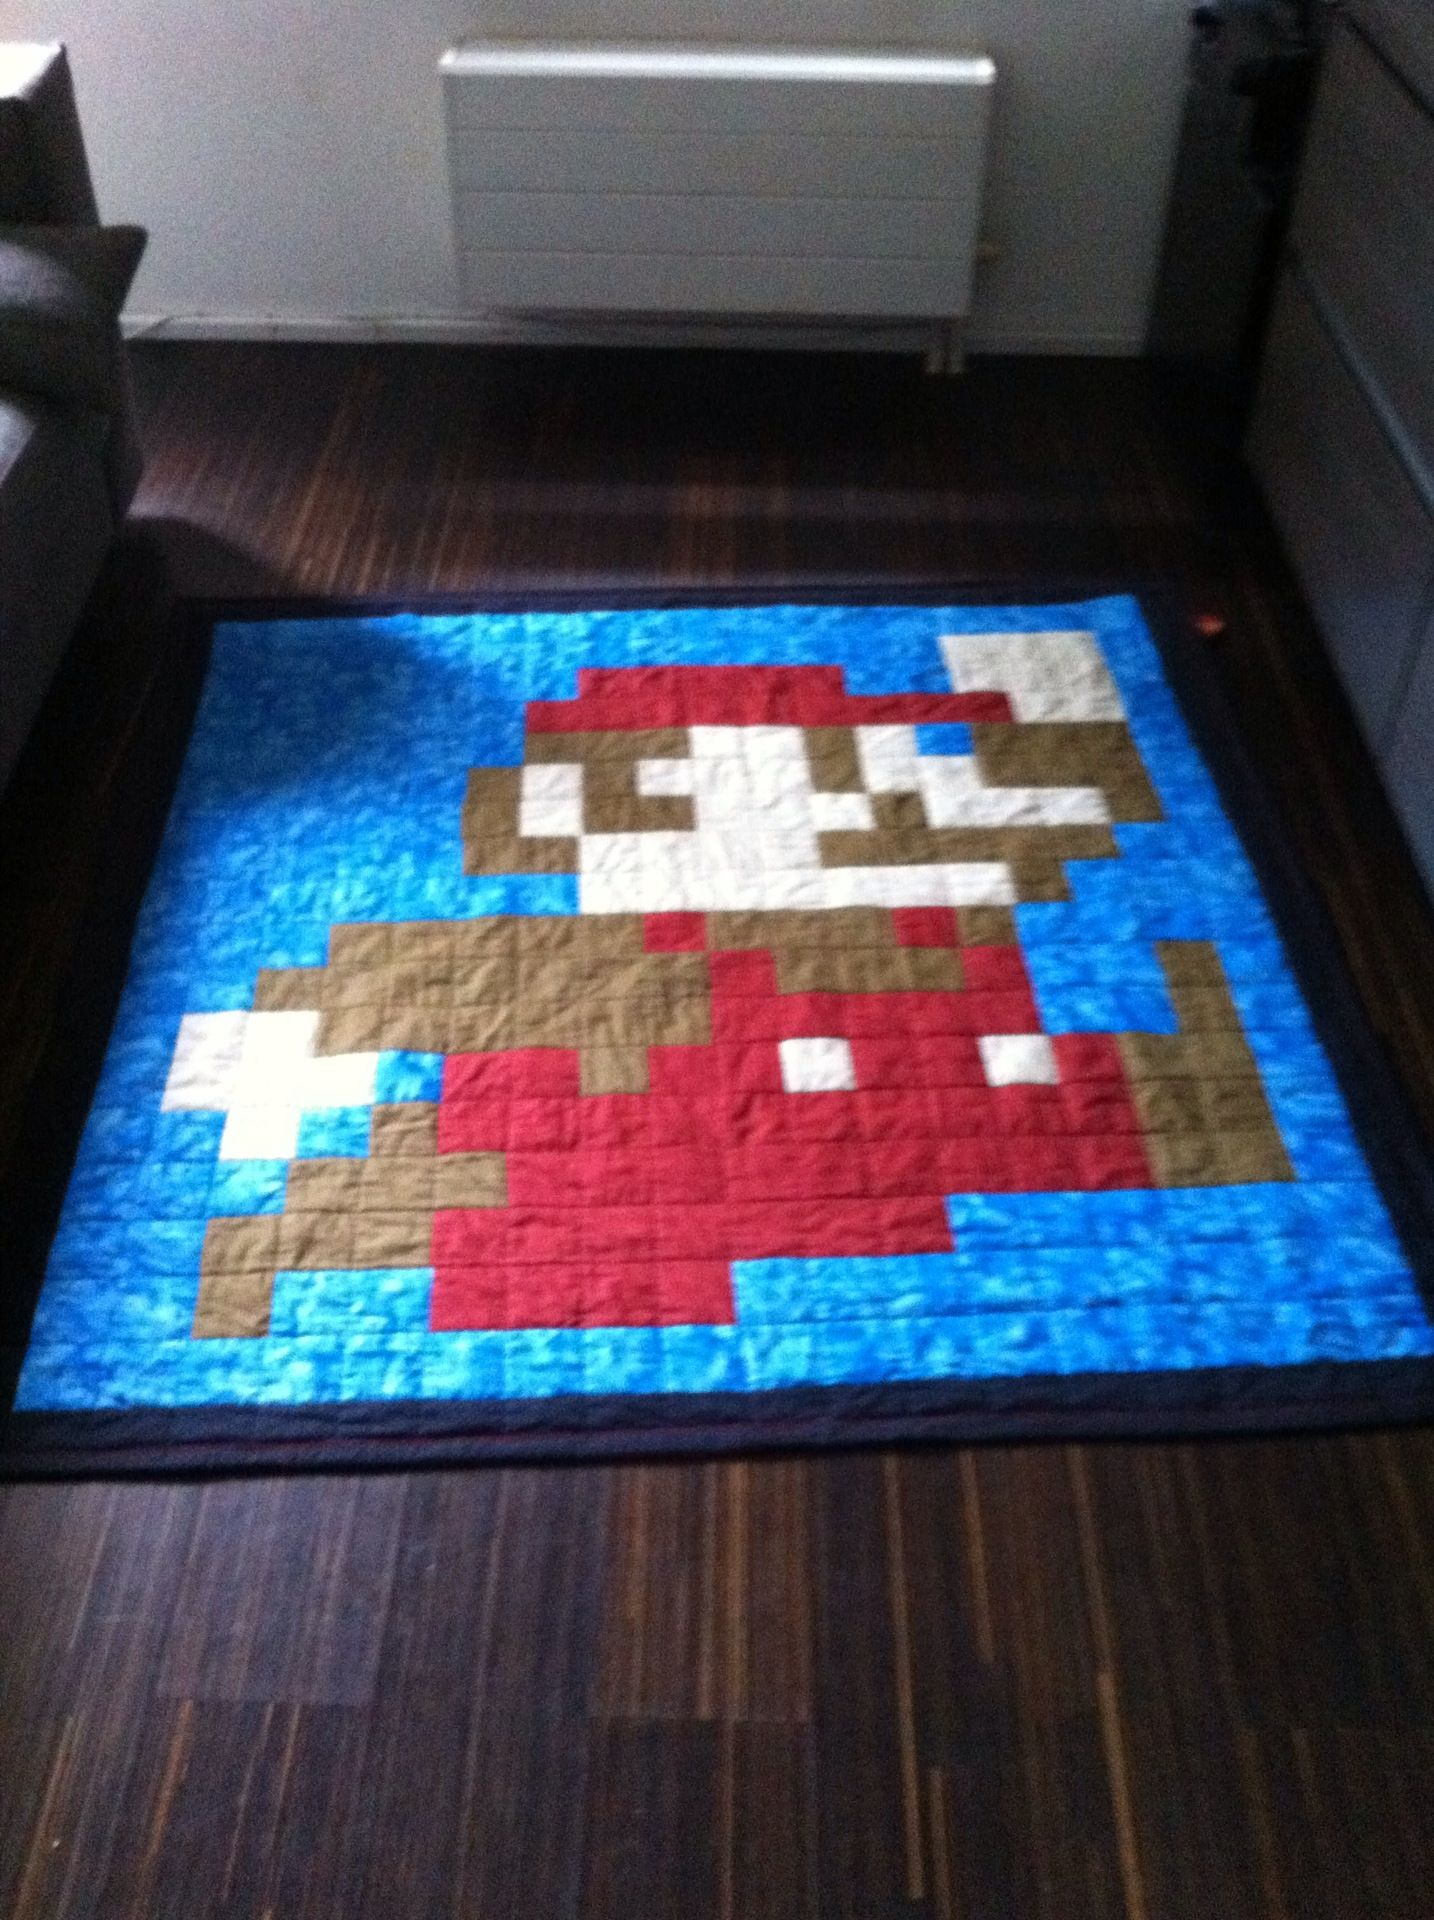 Super Mario Brother Quilt Pattern Free Of Course Mario Quilt Mario Quilt Pattern Quilt Patterns